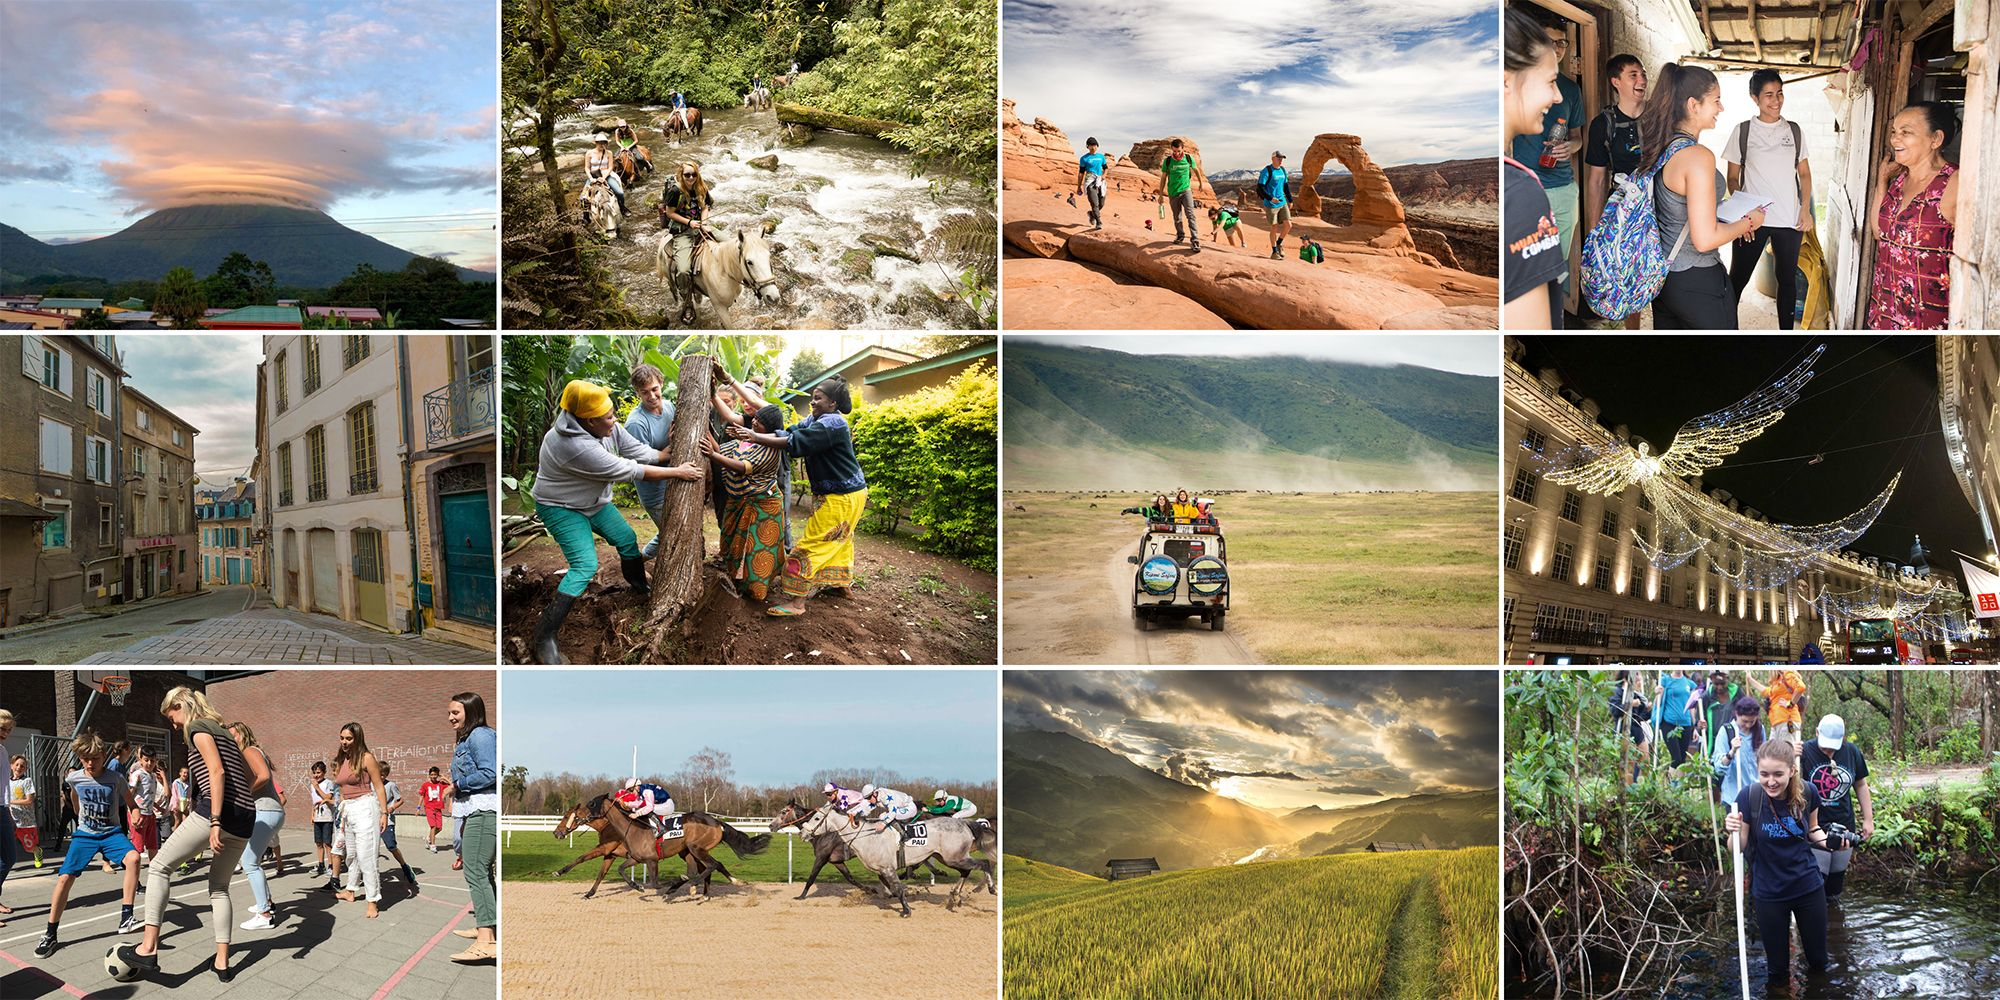 A sampling of Rollins many study abroad experiences, from Costa Rica and Tanzania to London and the Dominican Republic.